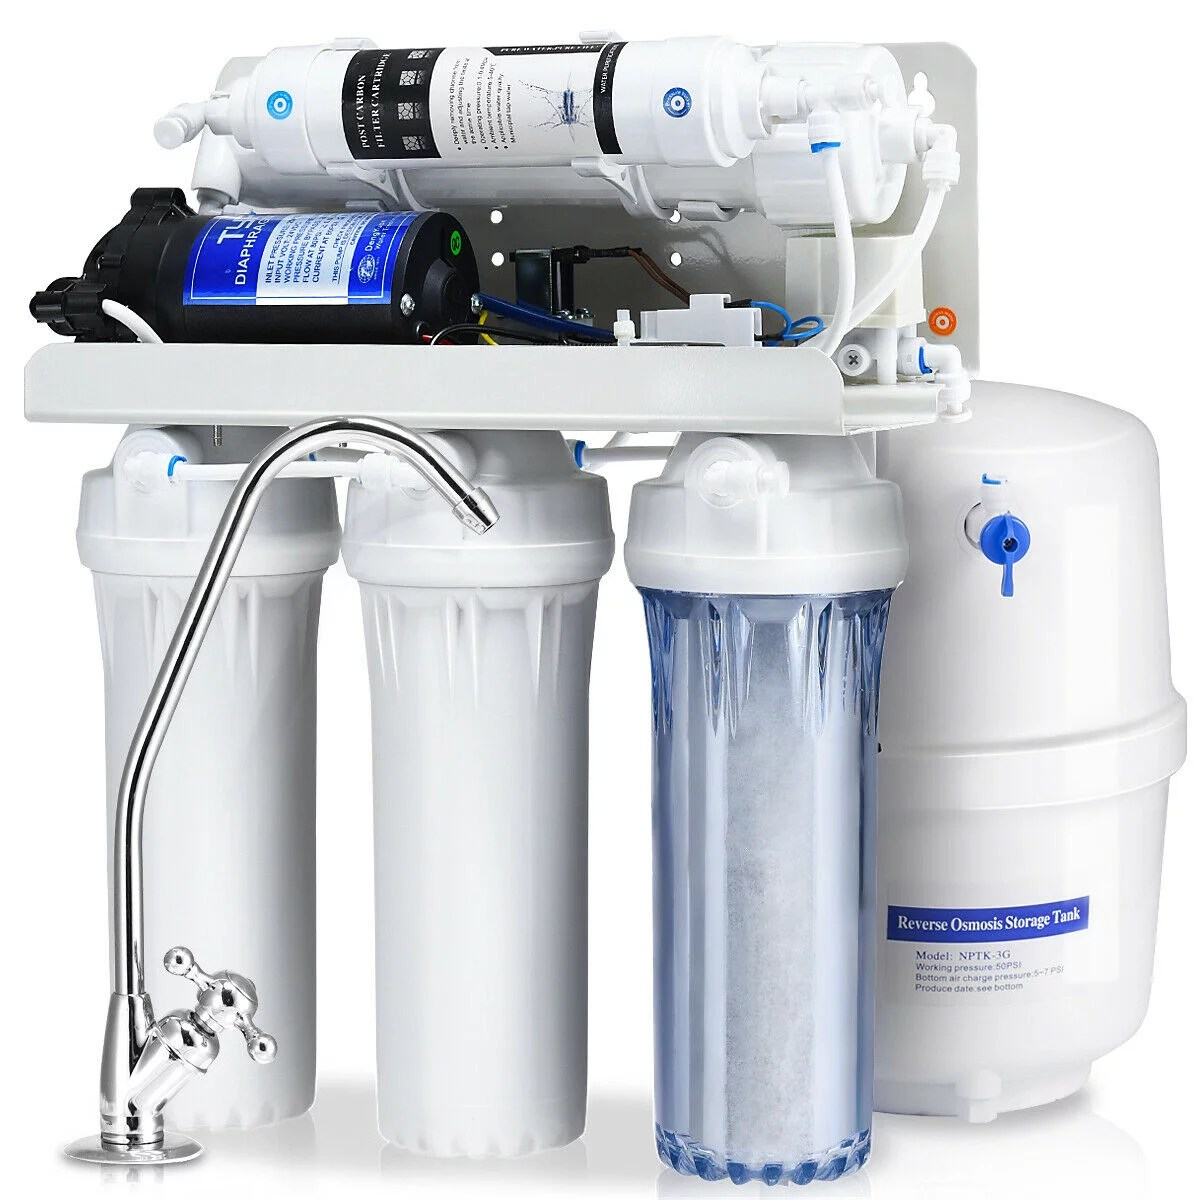 goplus 5 stage ultra safe reverse osmosis drinking water filter system purifier white